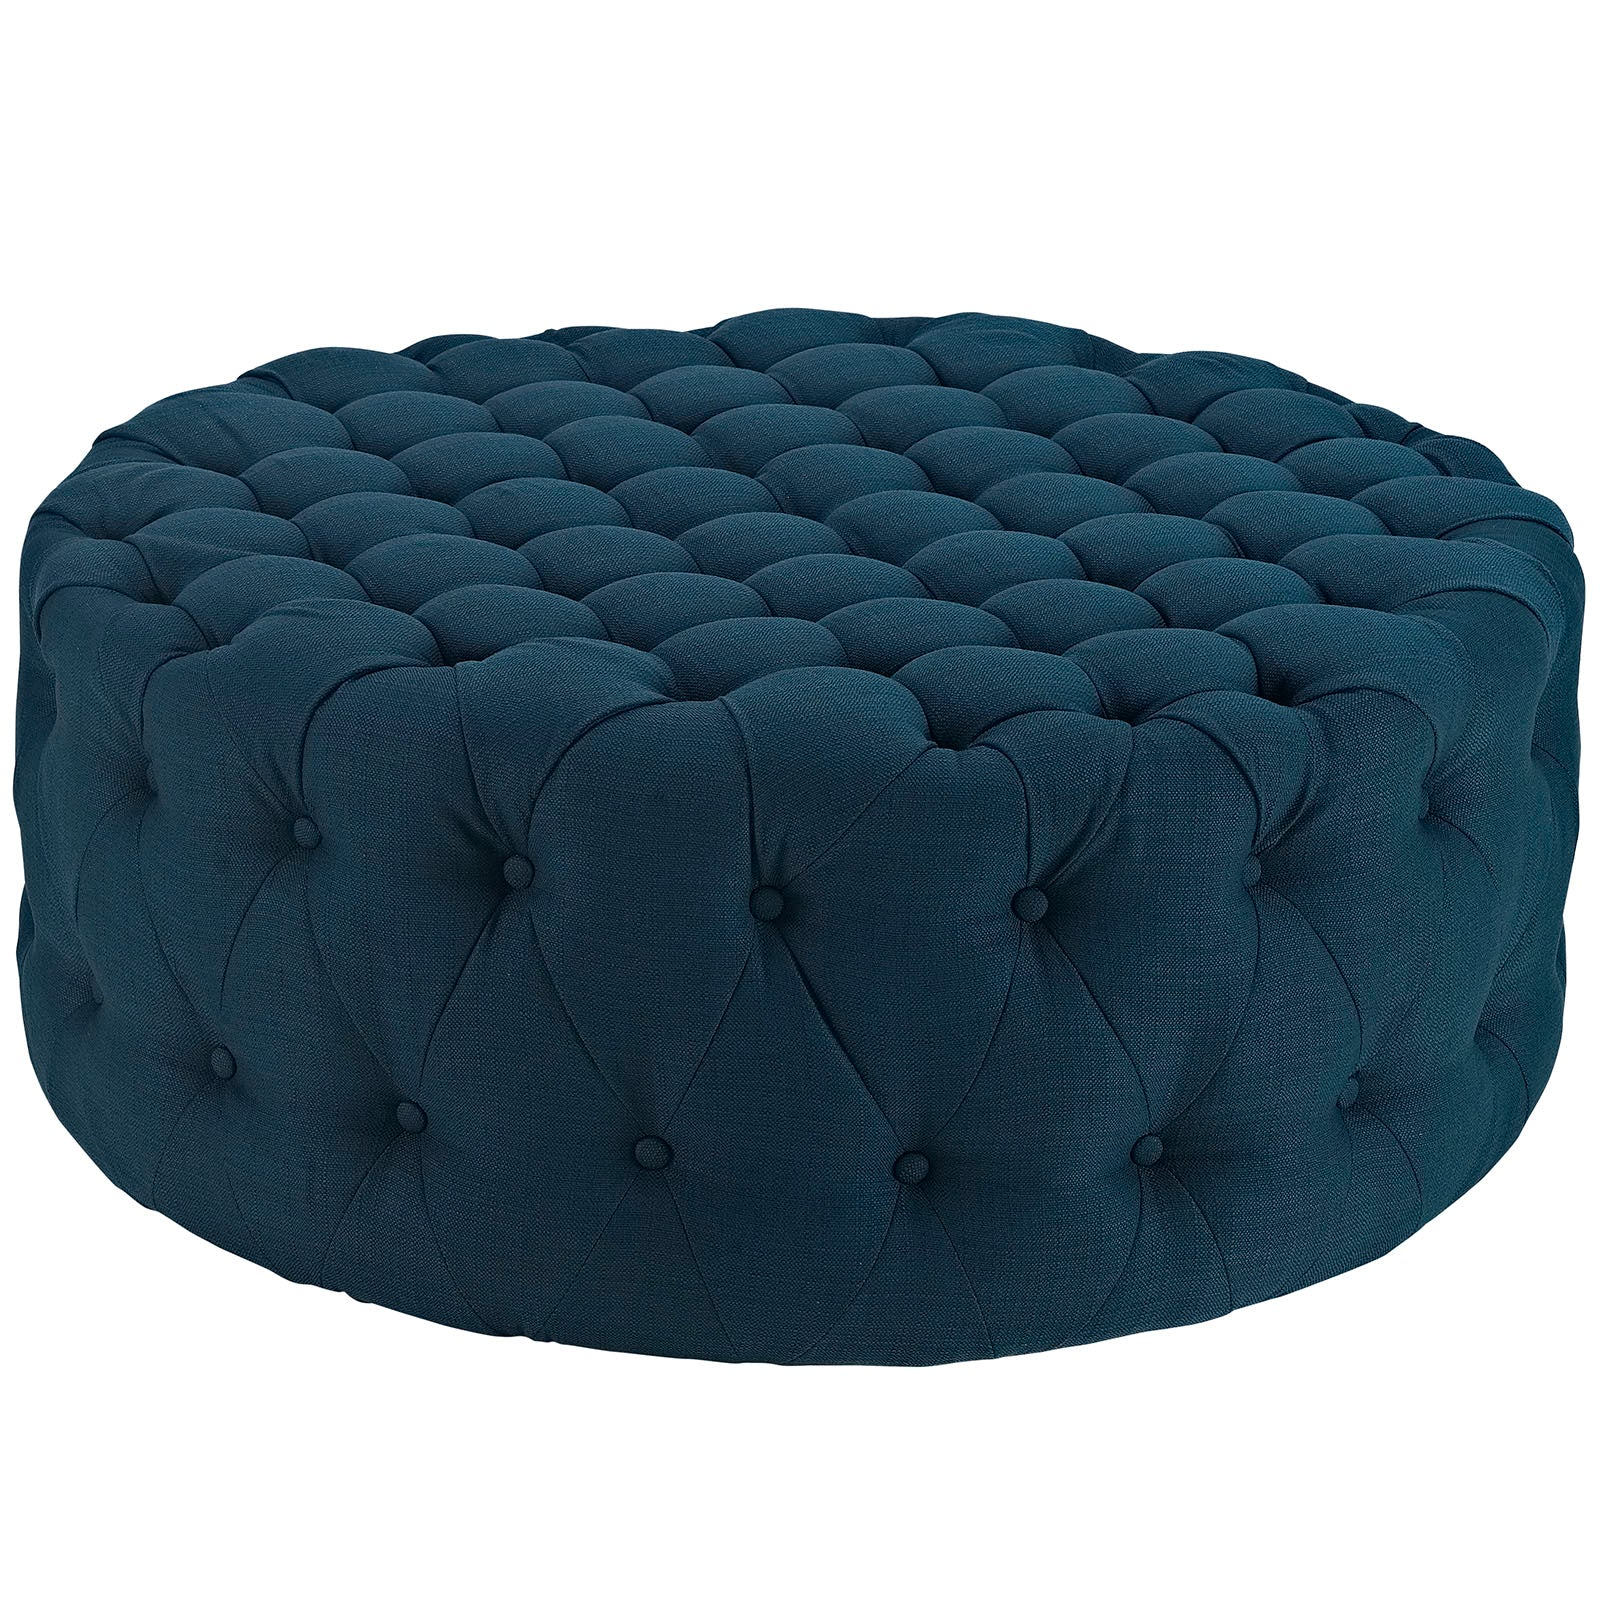 Modway Amour Large Round Upholstered Tufted Fabric Ottoman